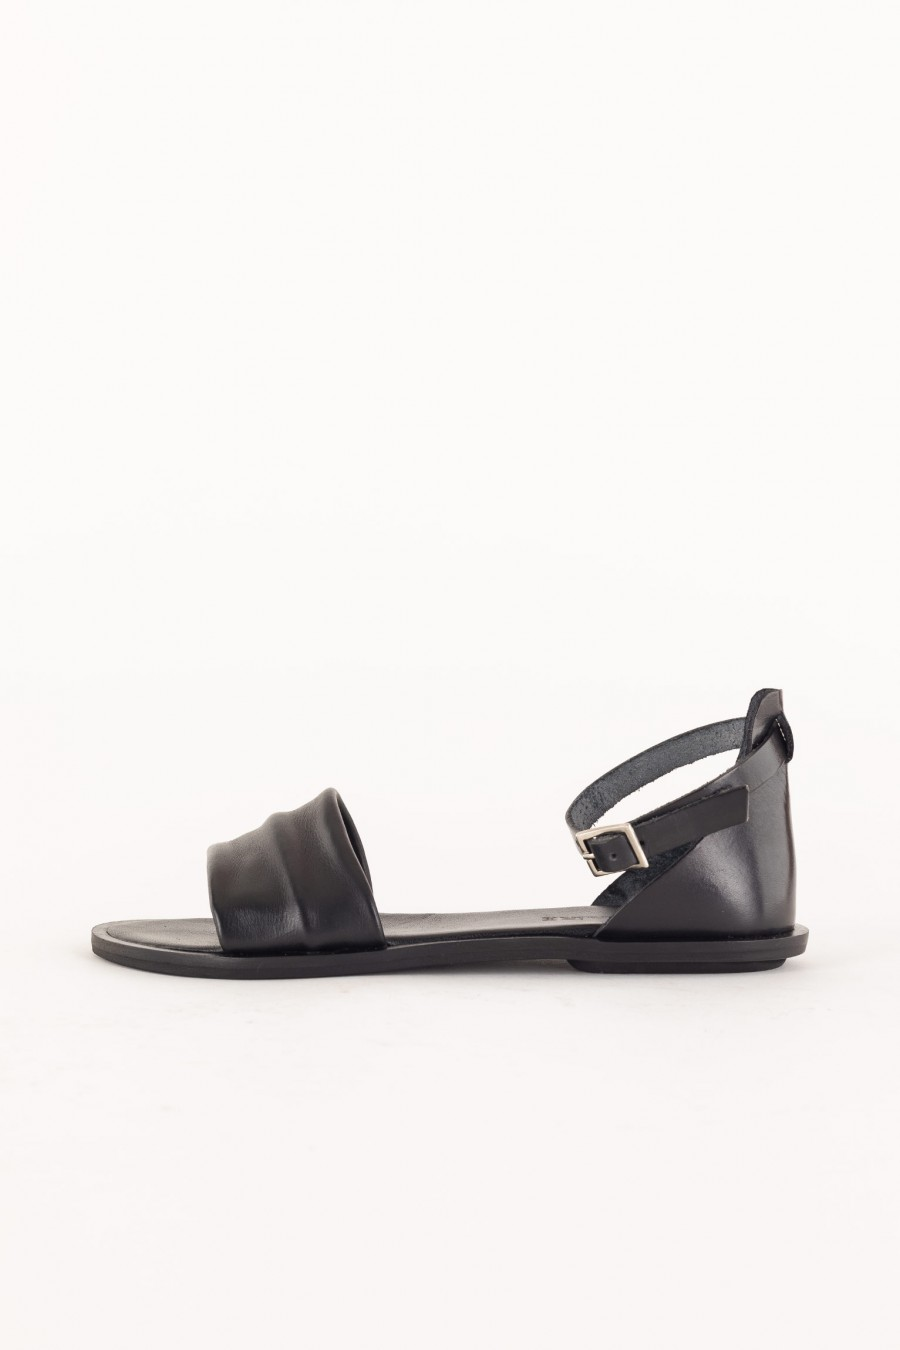 flat black sandal with band and ankle strap